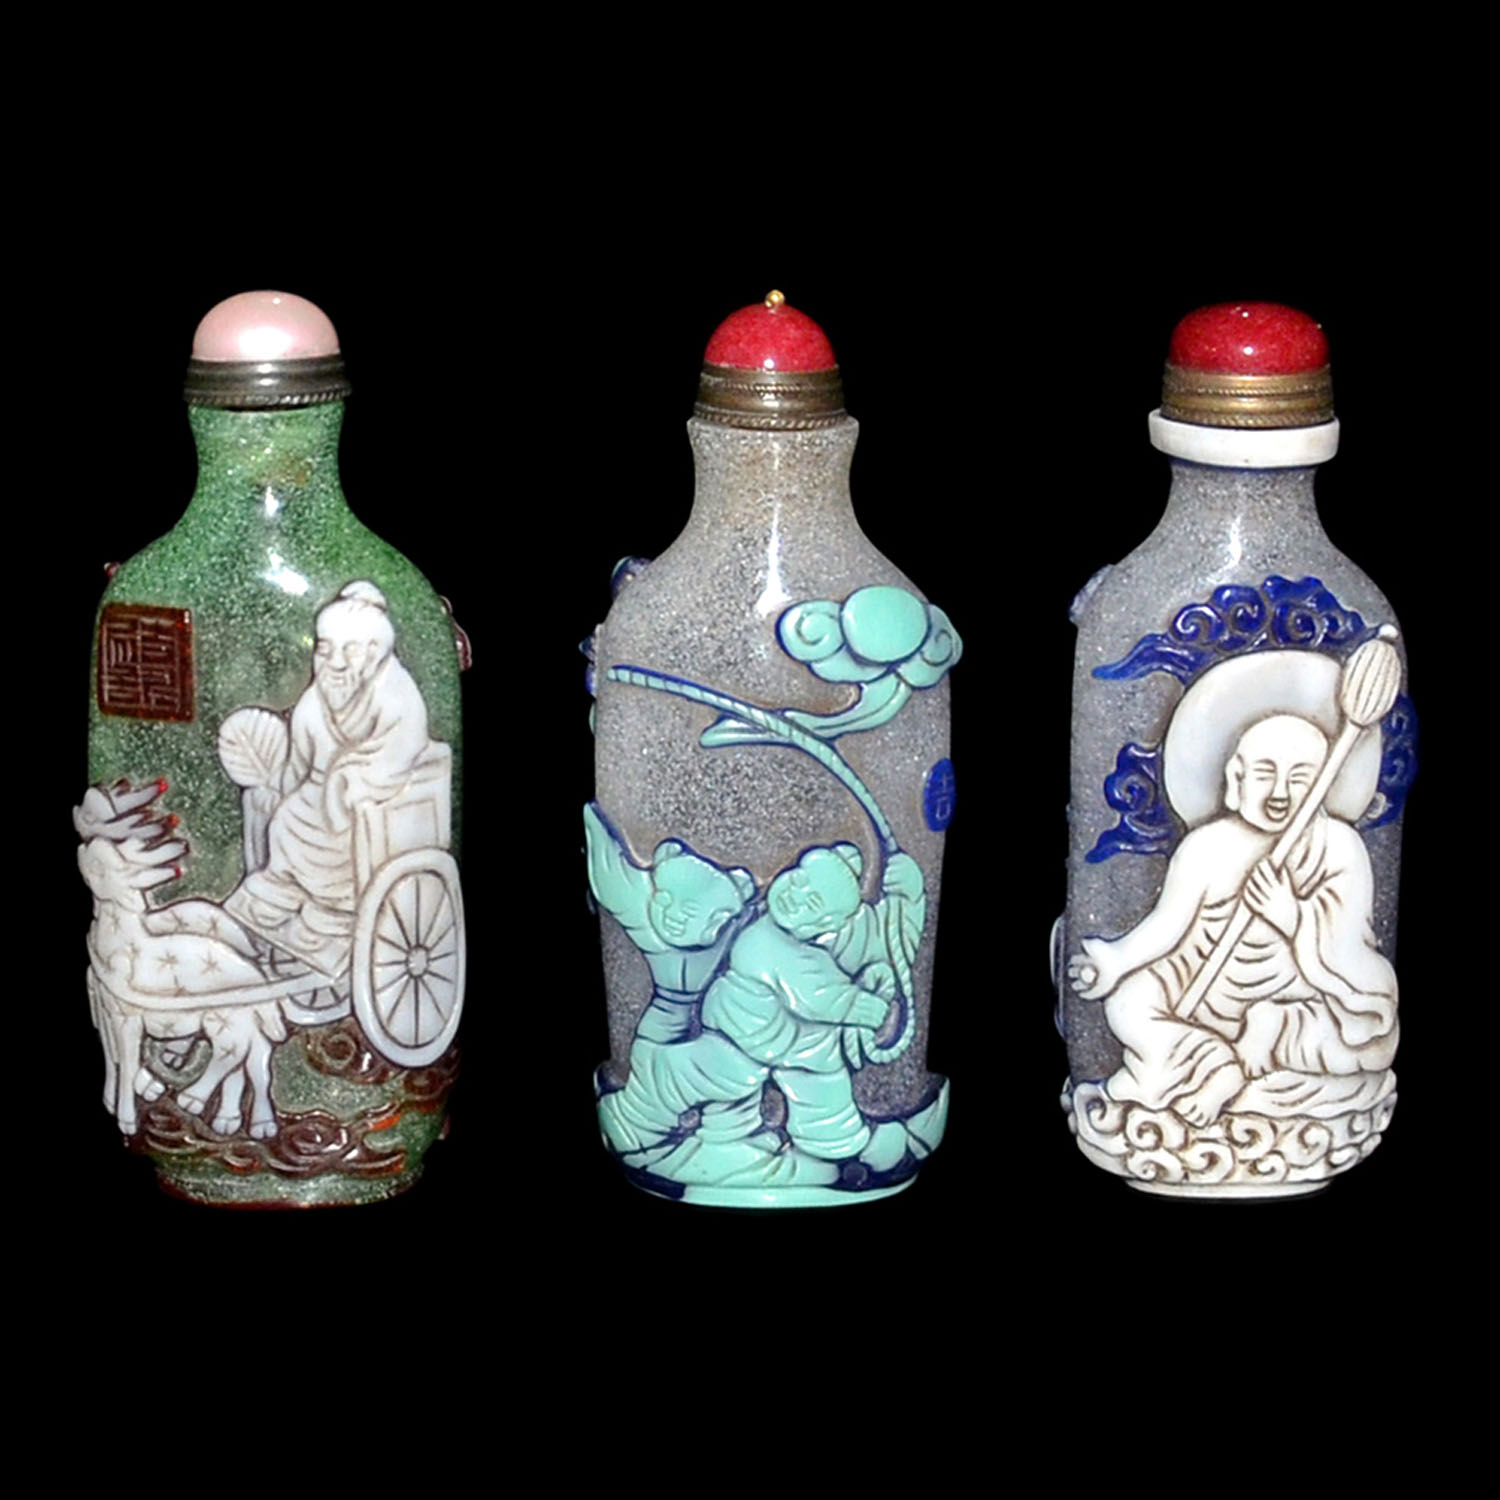 Lot 42 - 料彩童戲、羅漢、仙人鹿車鼻煙壺一套三件 Assorted Three Overlay Glass Snuff Bottles with Carved Luohan, Children at